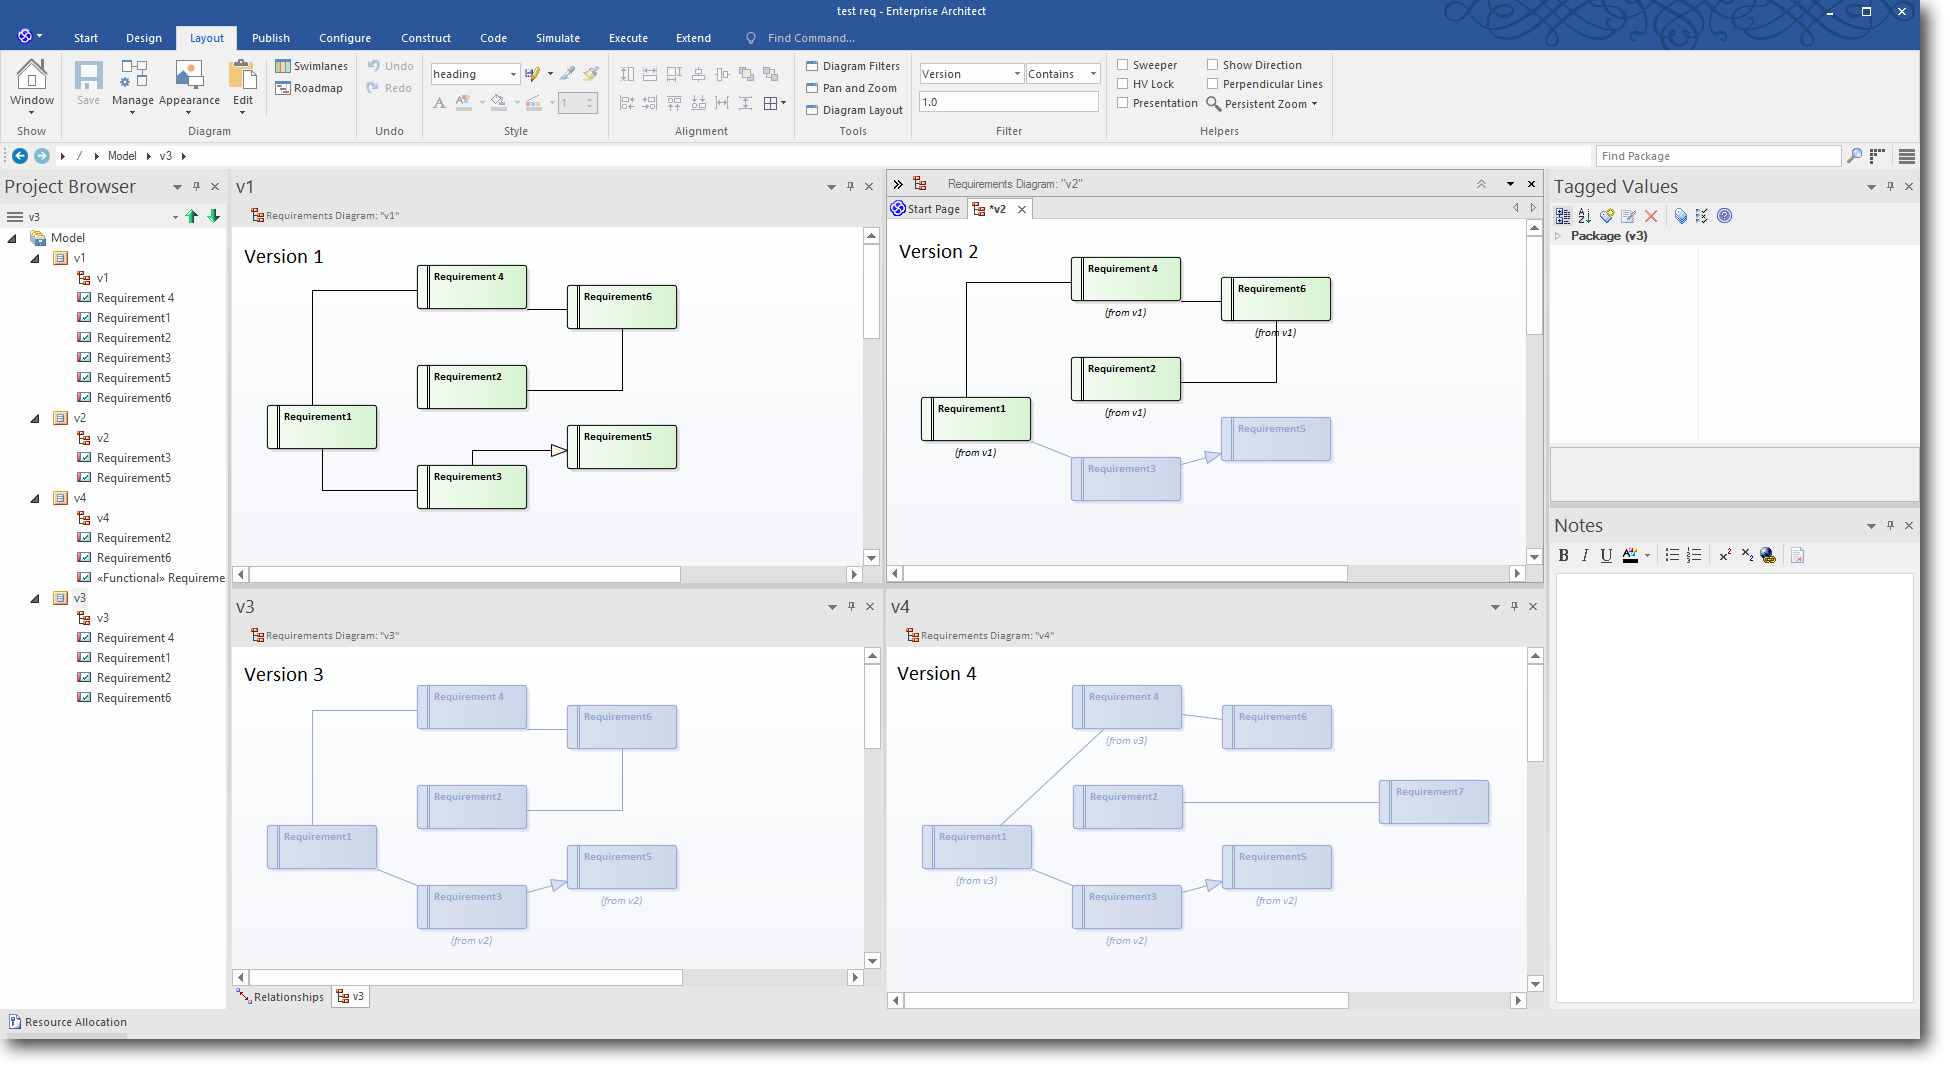 Enterprise Architect 13: Time Aware Modeling - Using a Diagram Filter to highlight Version 1.0 elements